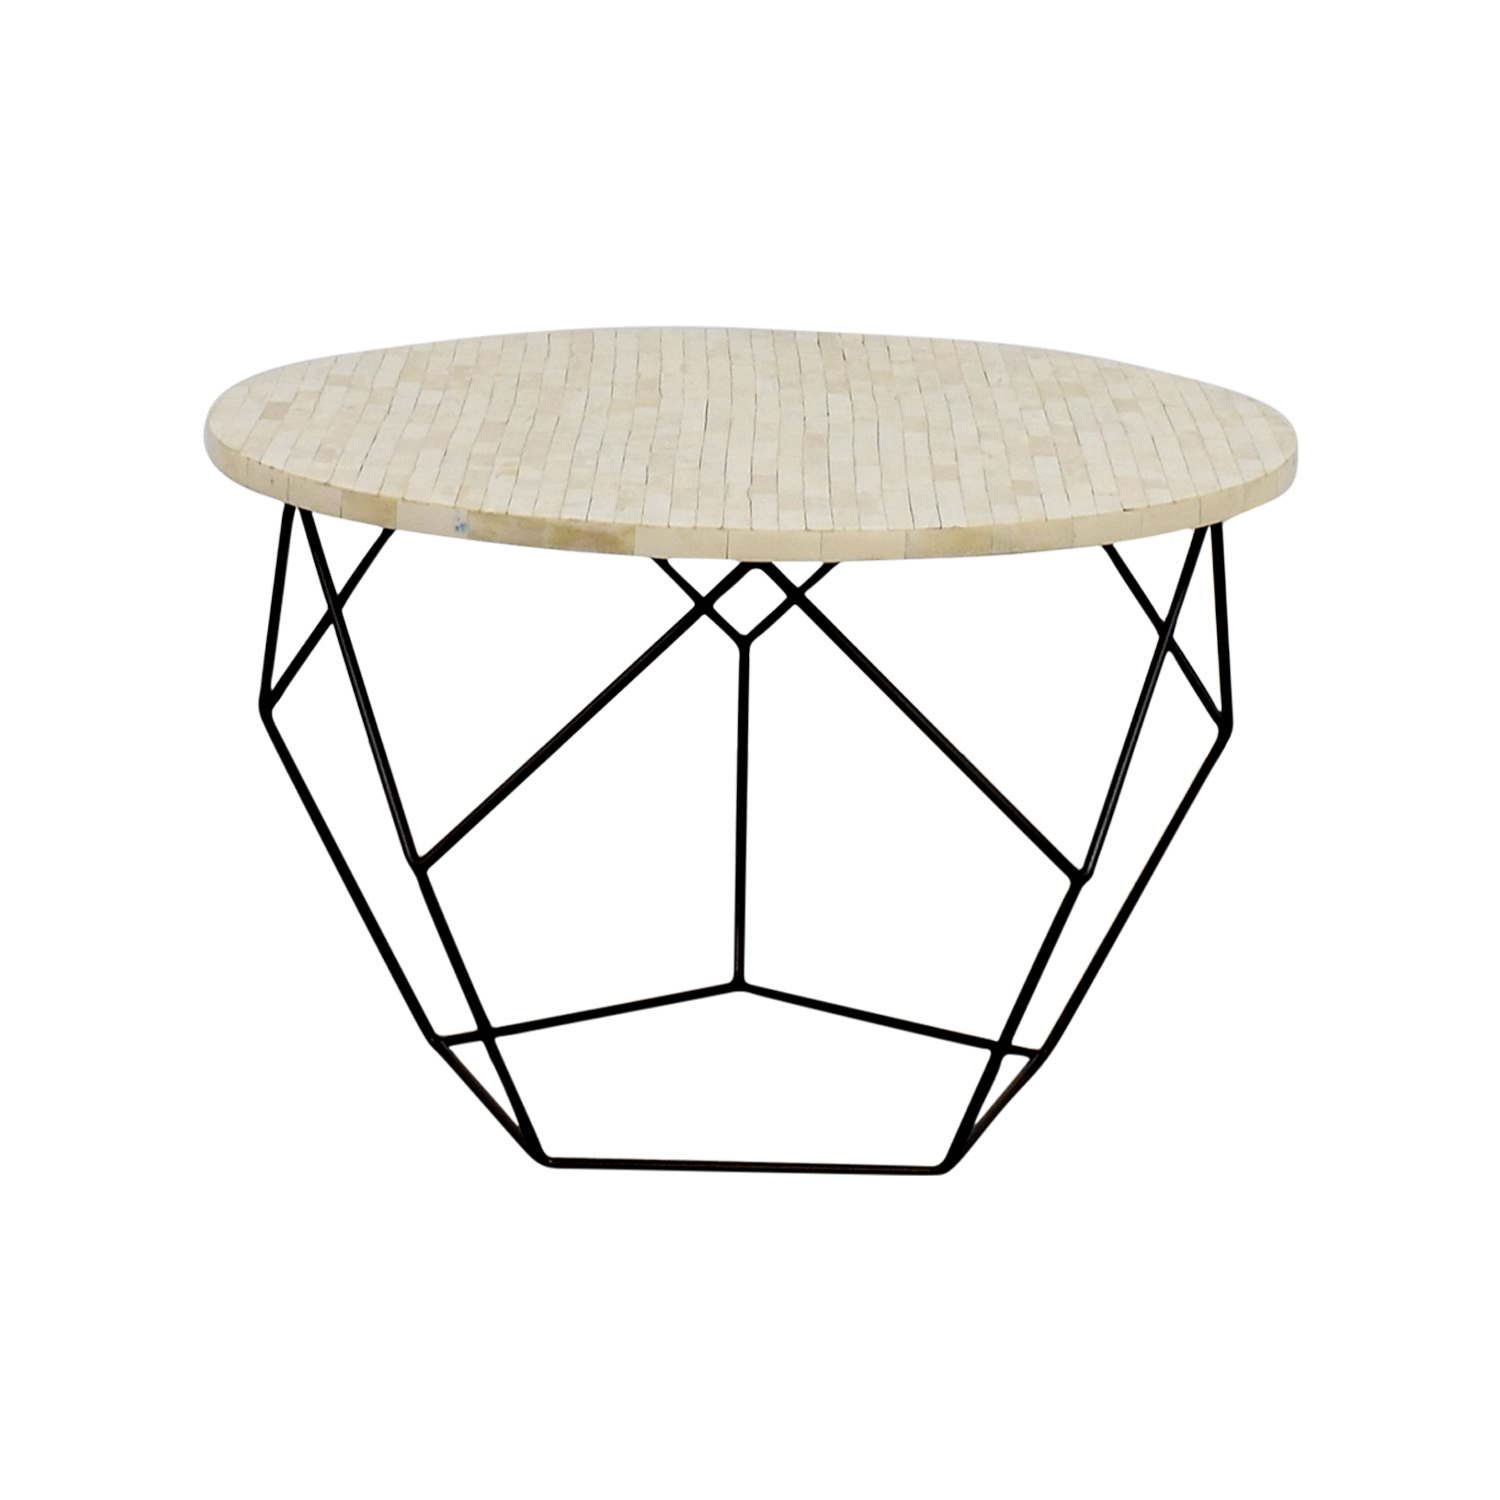 West Elm West Elm Origami Bone Coffee Table on sale